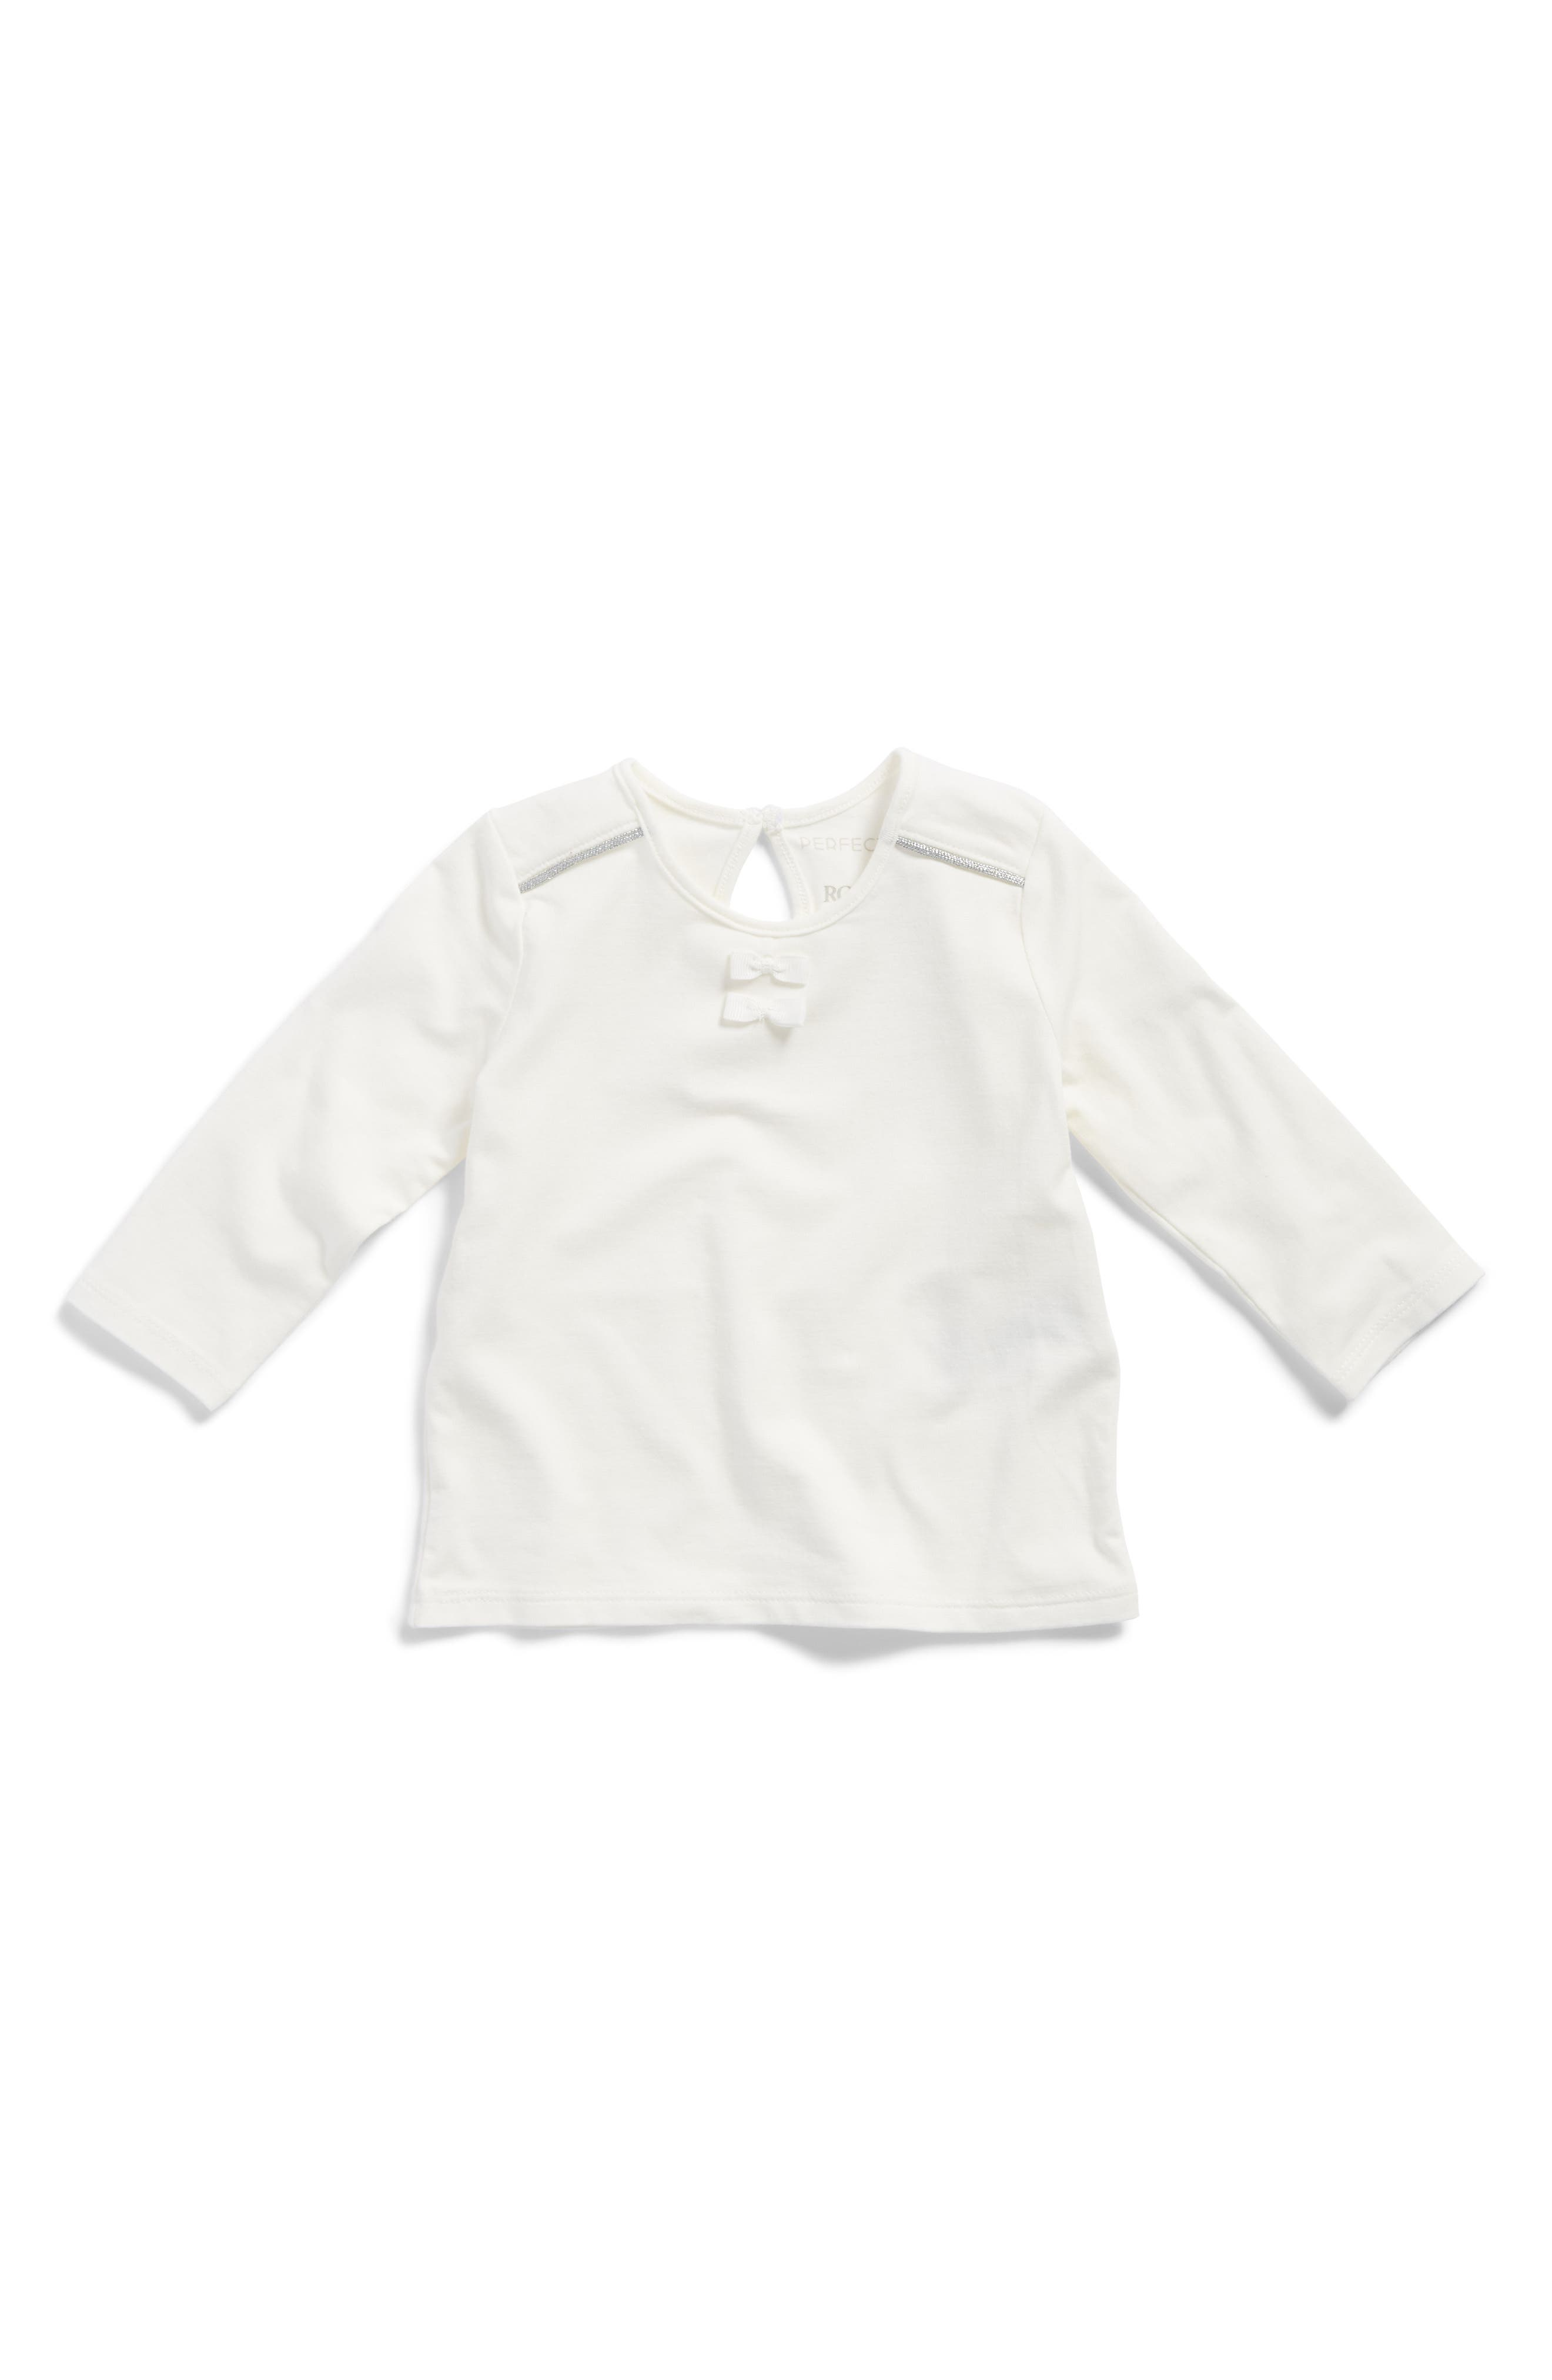 Alternate Image 1 Selected - Robeez® Bow Trim Knit Top (Baby Girls)